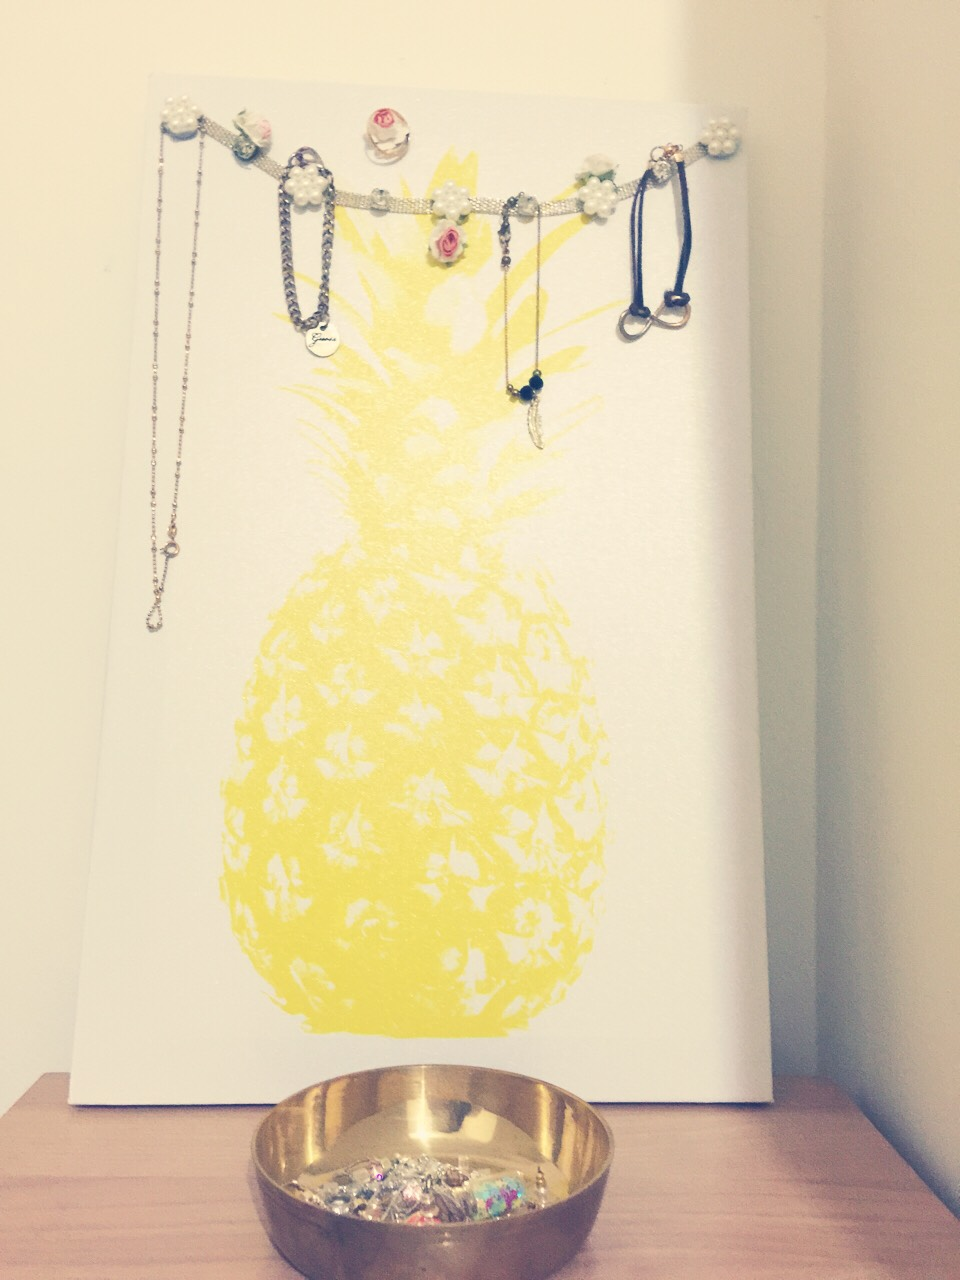 This is a super simple way you can make a cute jewellery display!